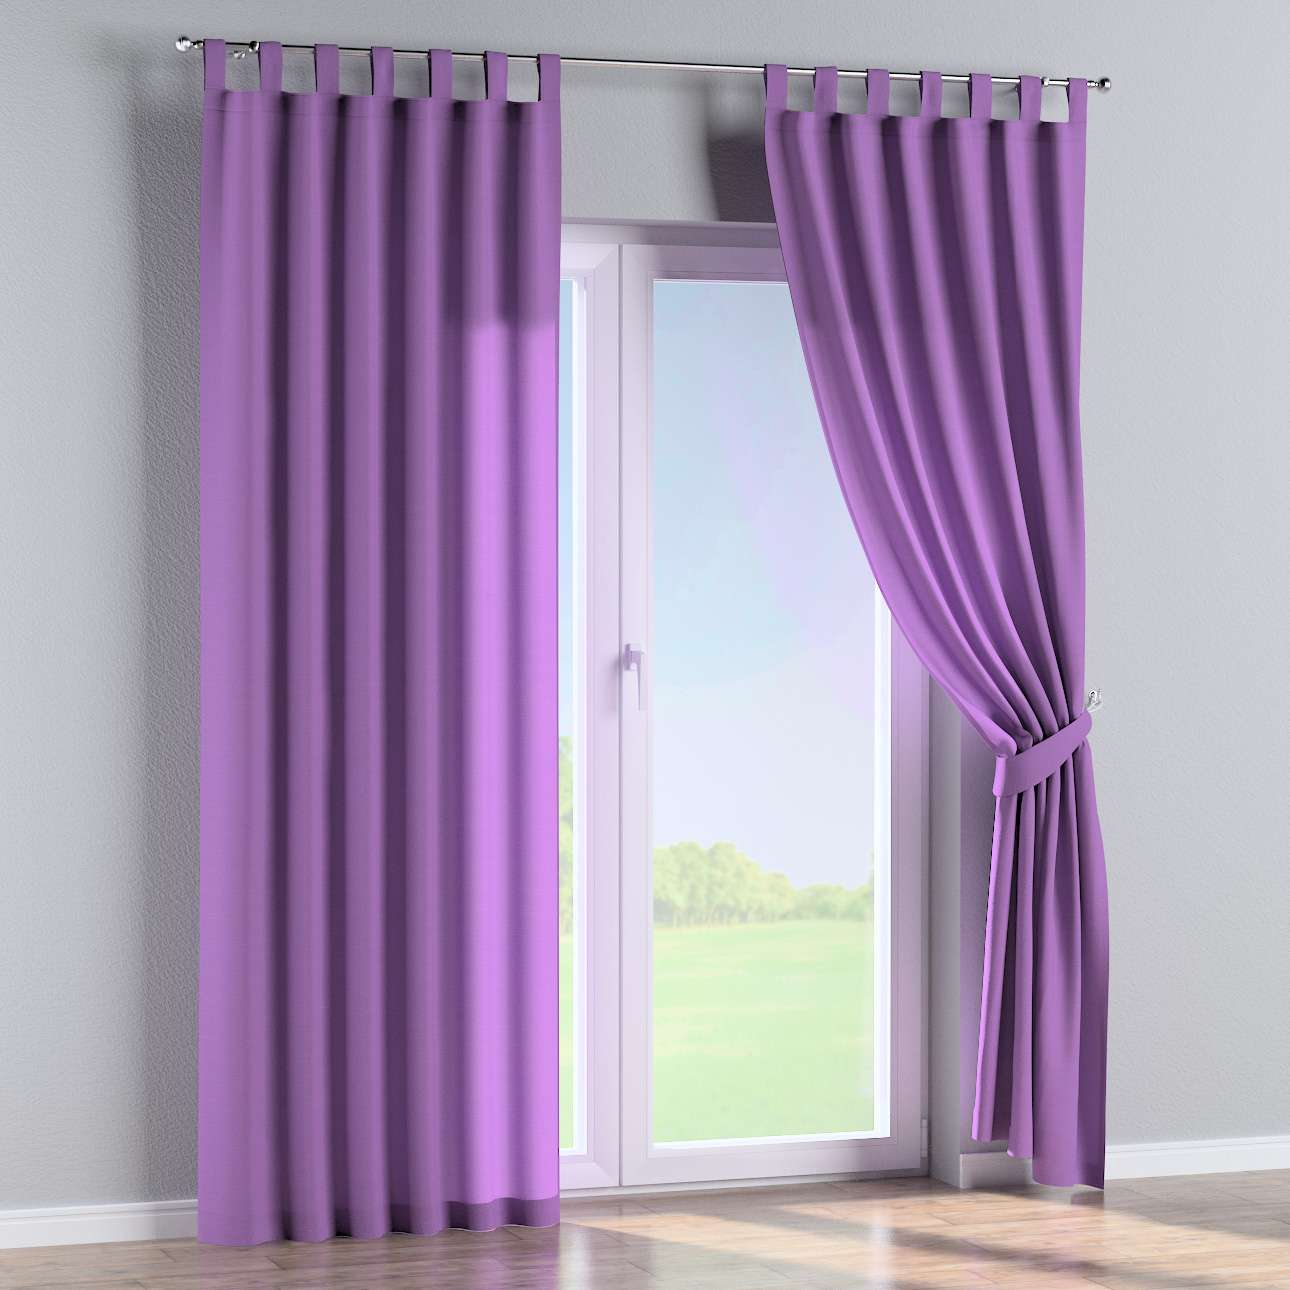 Tab top curtains 130 x 260 cm (51 x 102 inch) in collection Loneta , fabric: 133-19